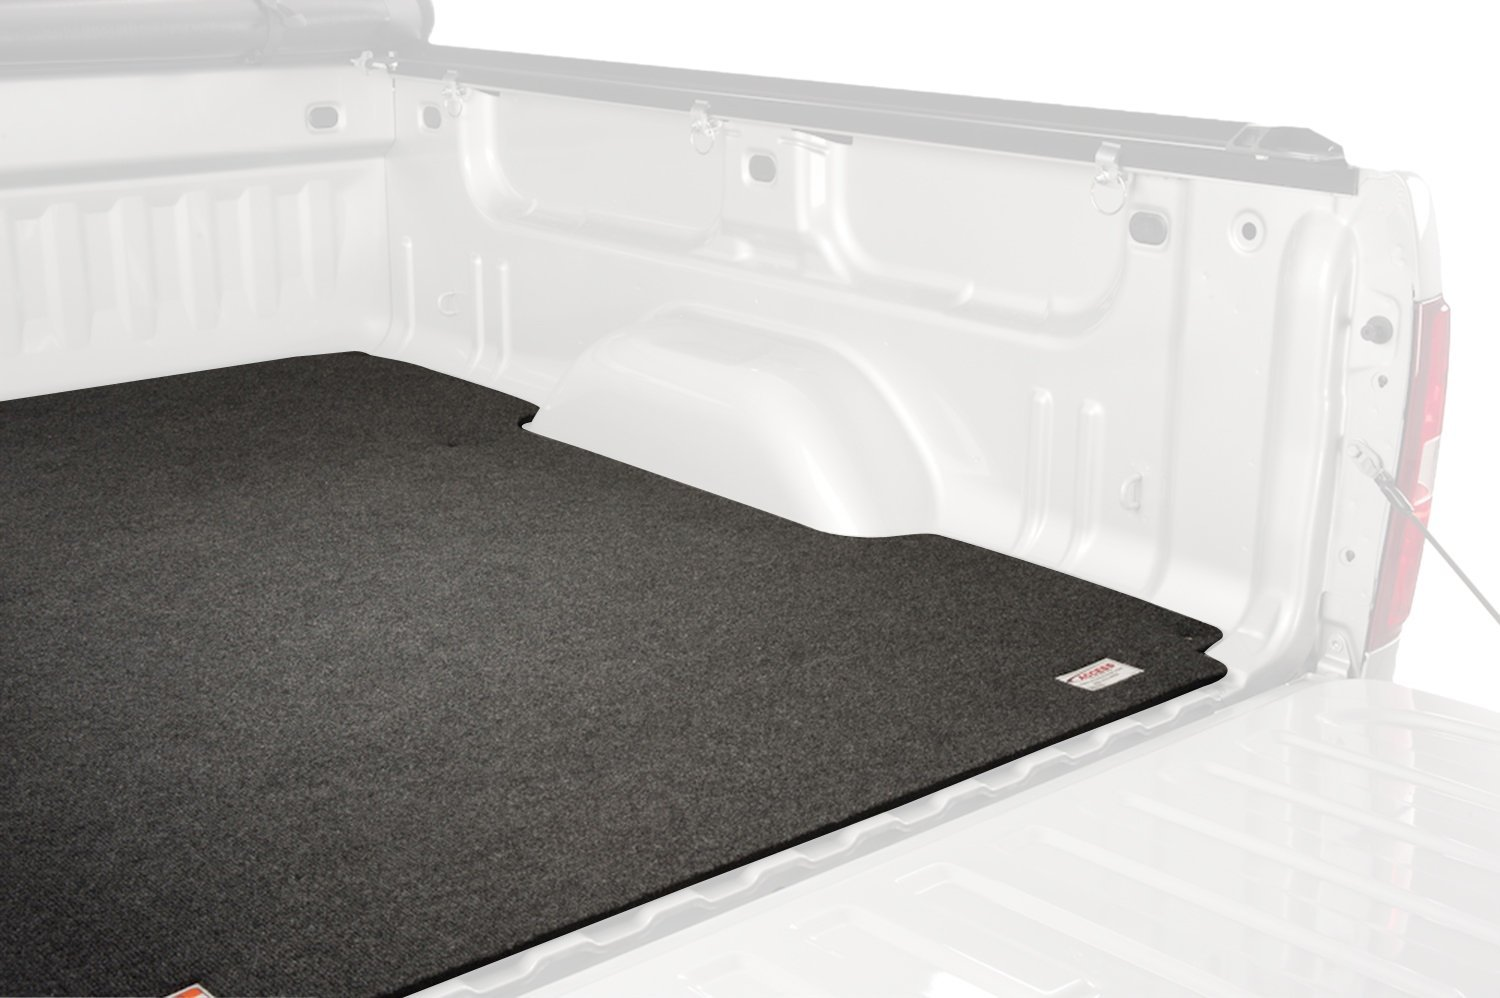 25020349 ACI/ AgriCover/ Access Cover Bed Mat Direct-Fit